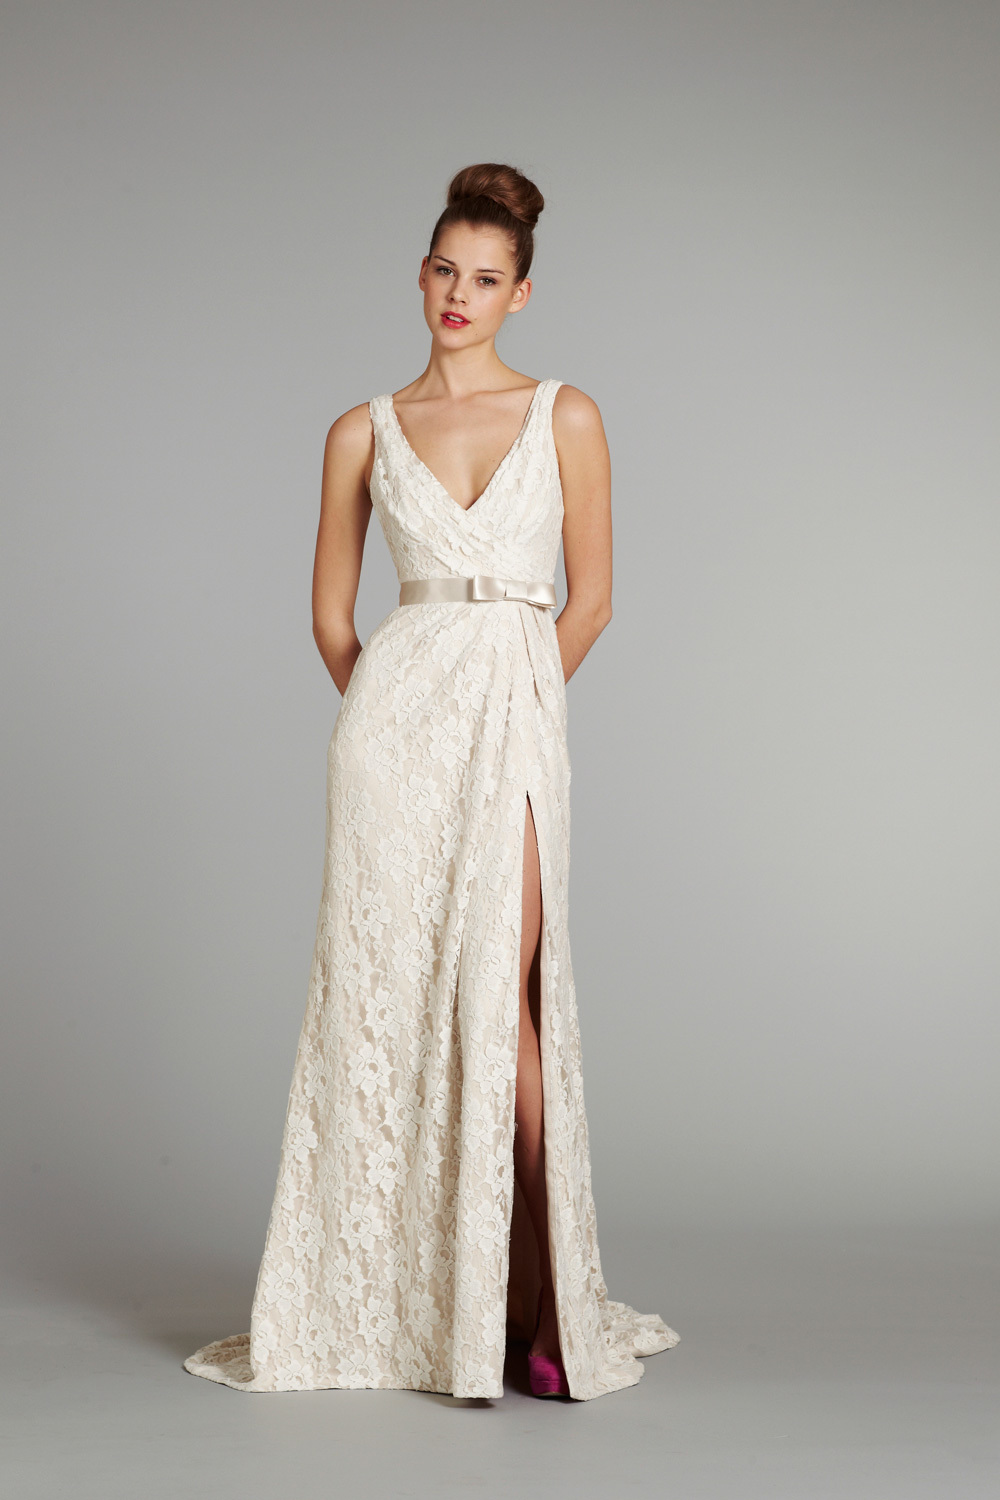 bridal gown wedding dress jlm hayley paige blush fall 2012 saffron front